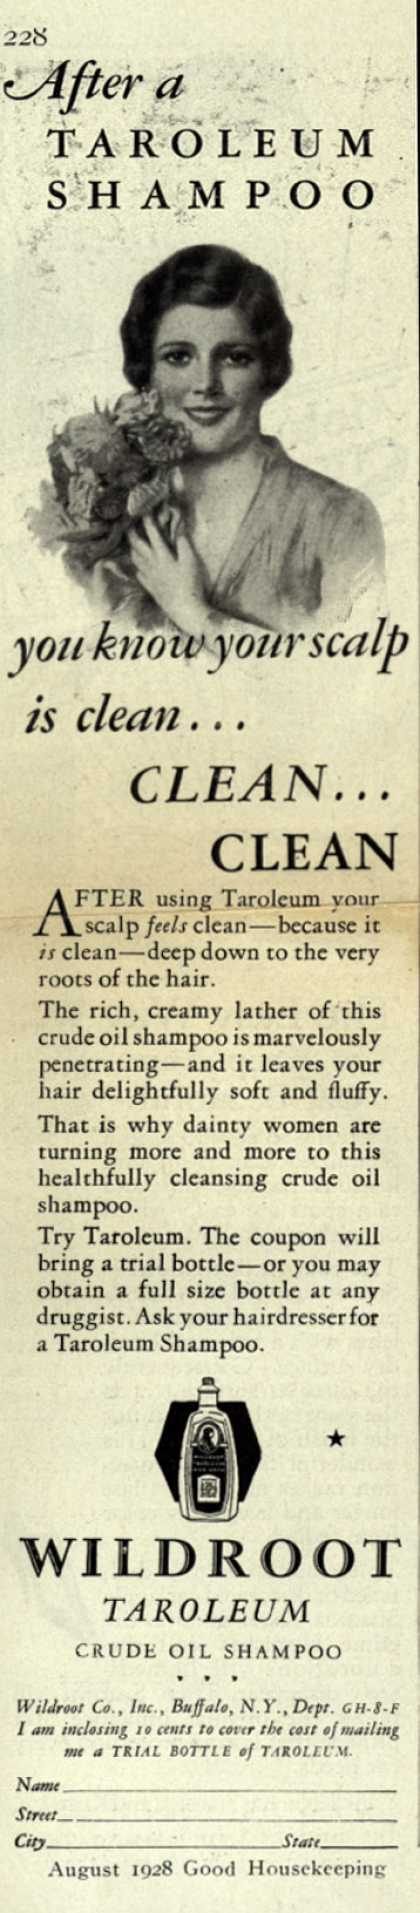 Wildroot Company's Wildroot Taroleum Crude Oil Shampoo – After a Taroleum Shampoo you know your scalp is clean... Clean... Clean (1928)